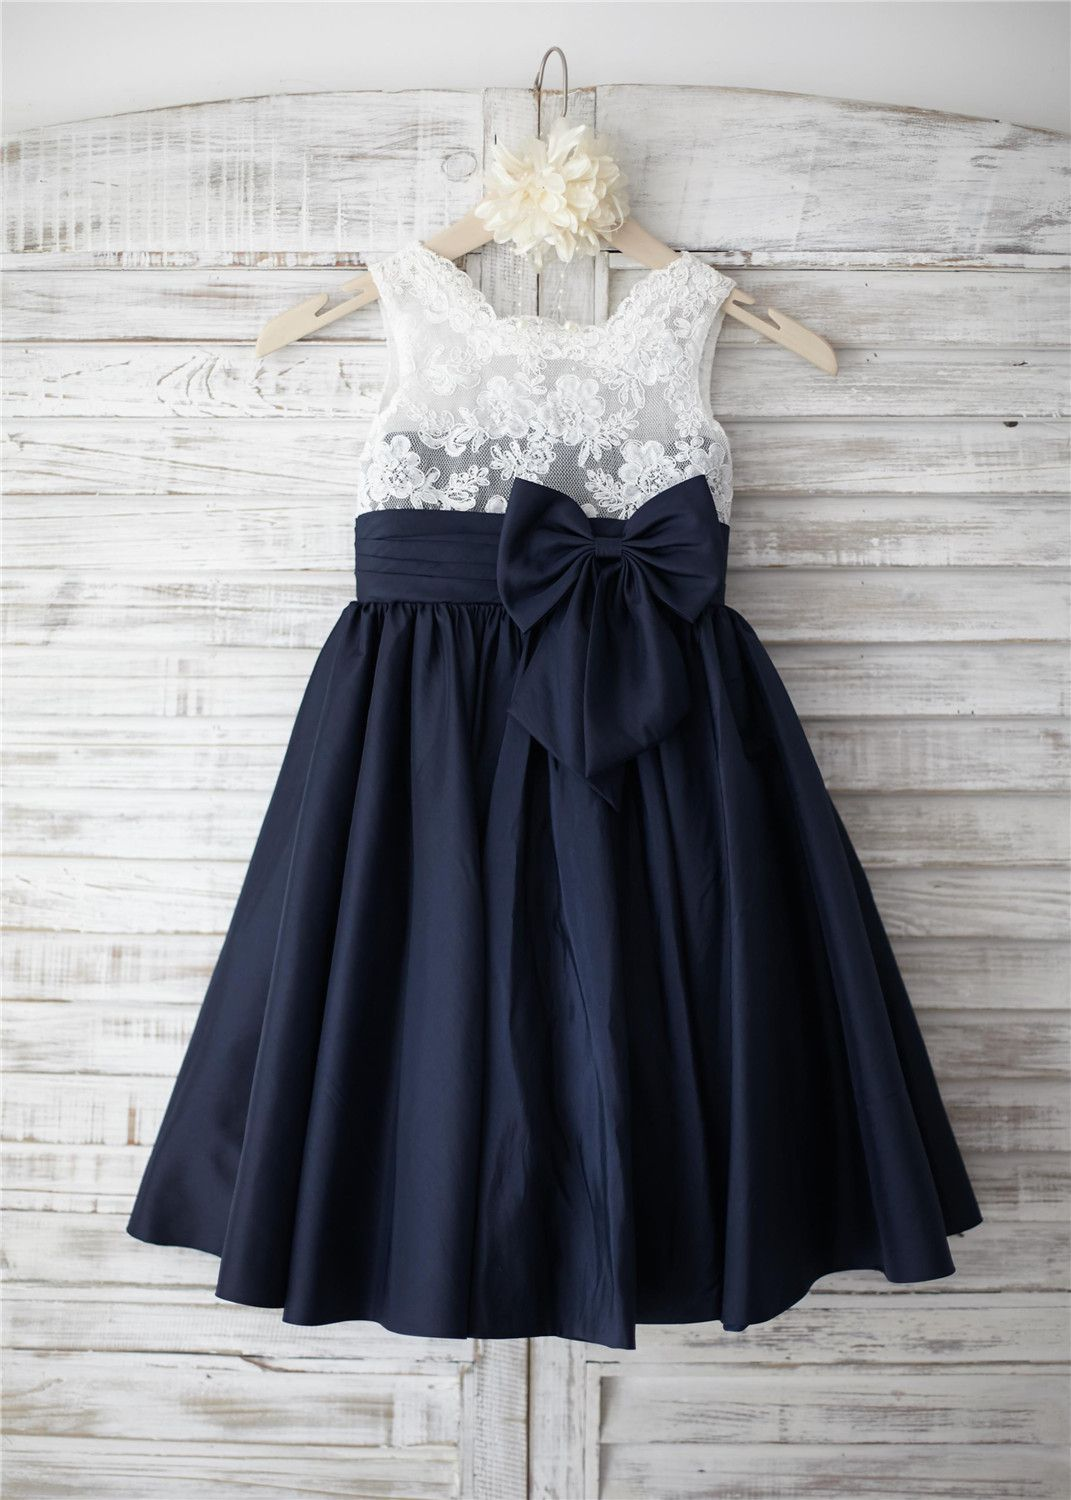 de8a5c82eba9 The materials for this dress is lace and taffeta.The listed color is navy  blue bottom and ivory lace top.the lace color will as pictured no matter  which ...